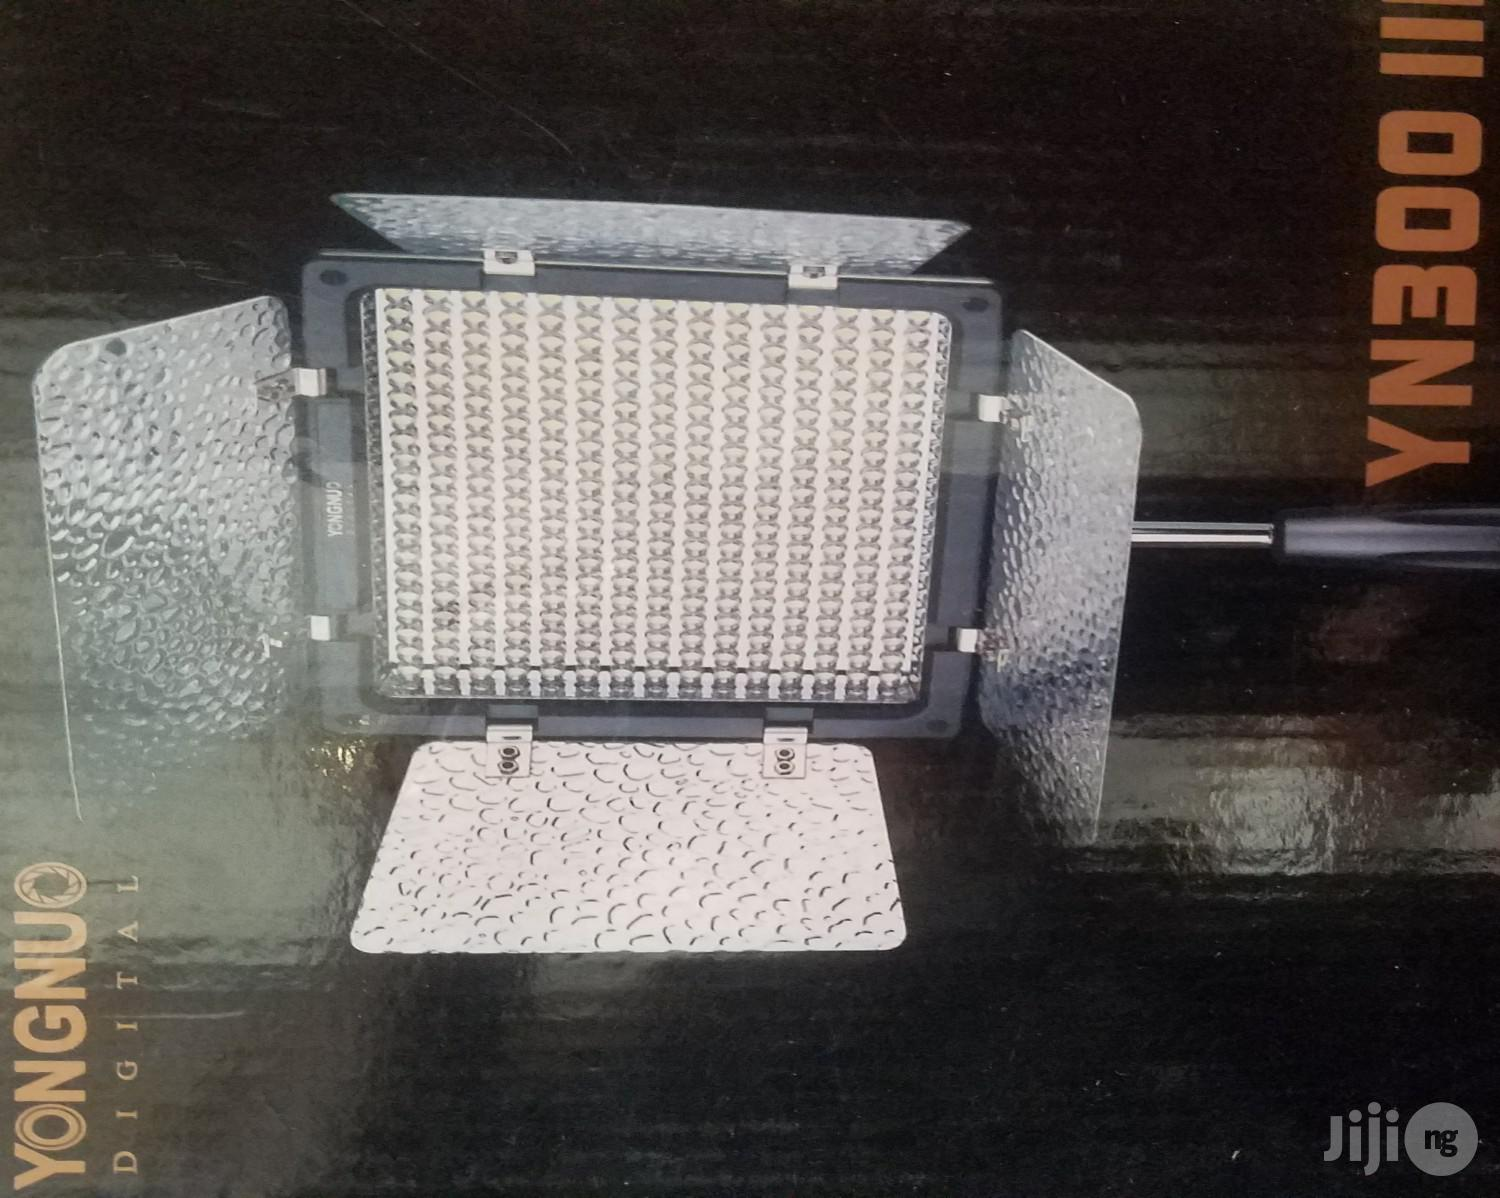 Yongnuo Pro Led Video Light Yn300ii | Accessories & Supplies for Electronics for sale in Lagos Island (Eko), Lagos State, Nigeria